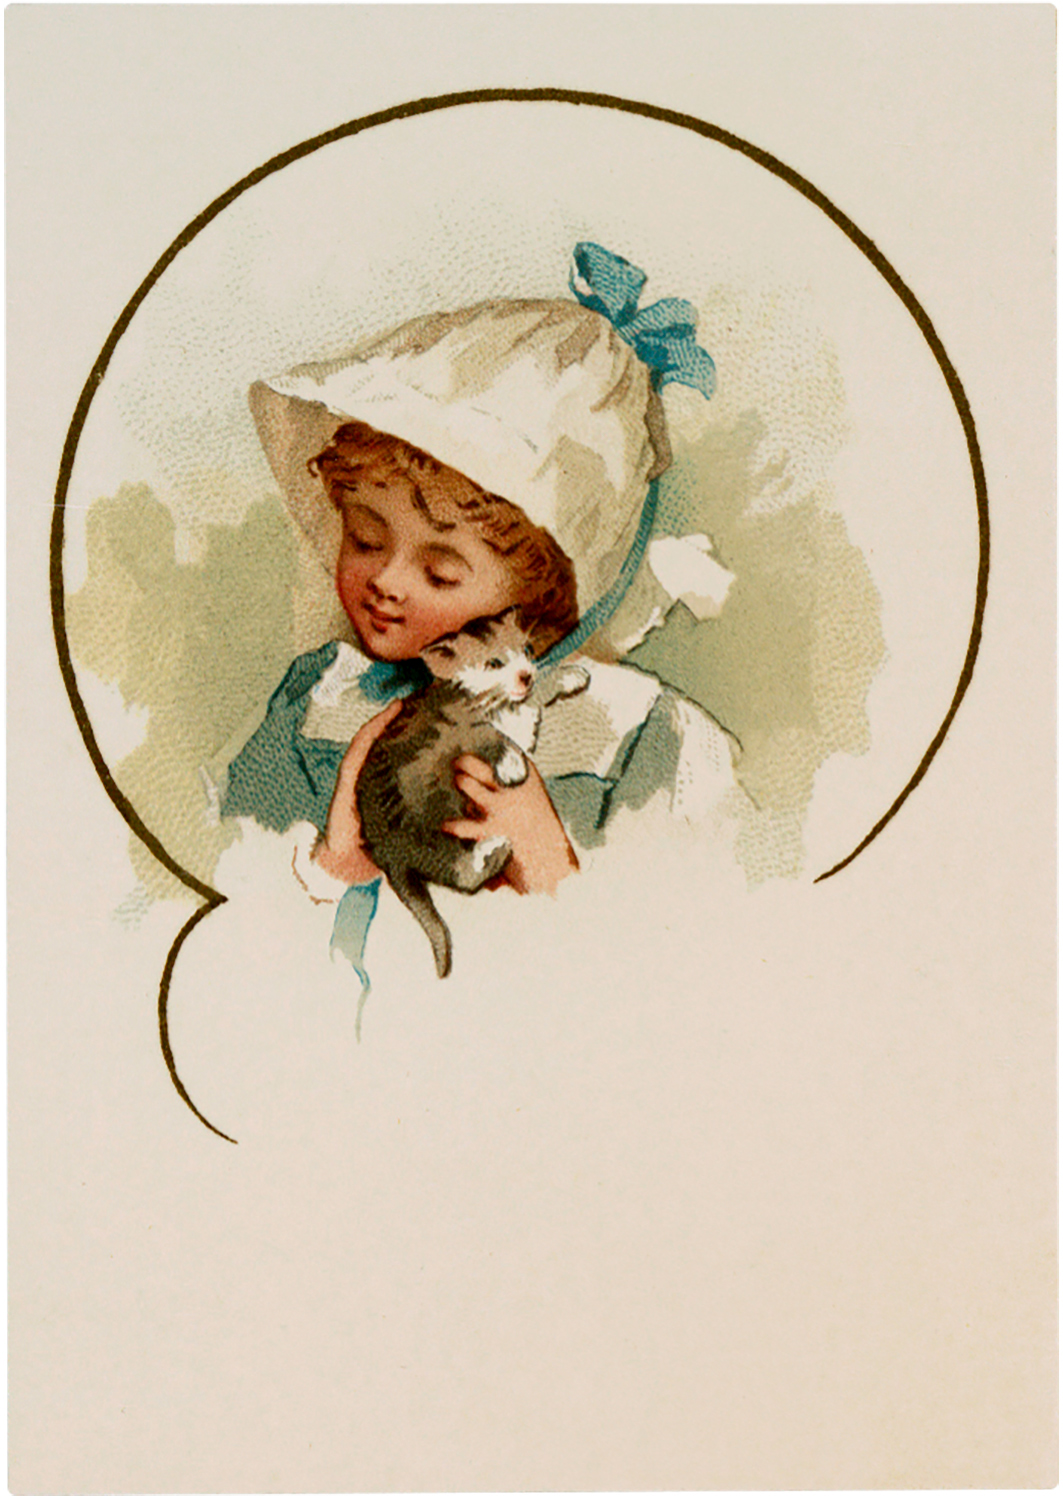 Girl with Kitten Image